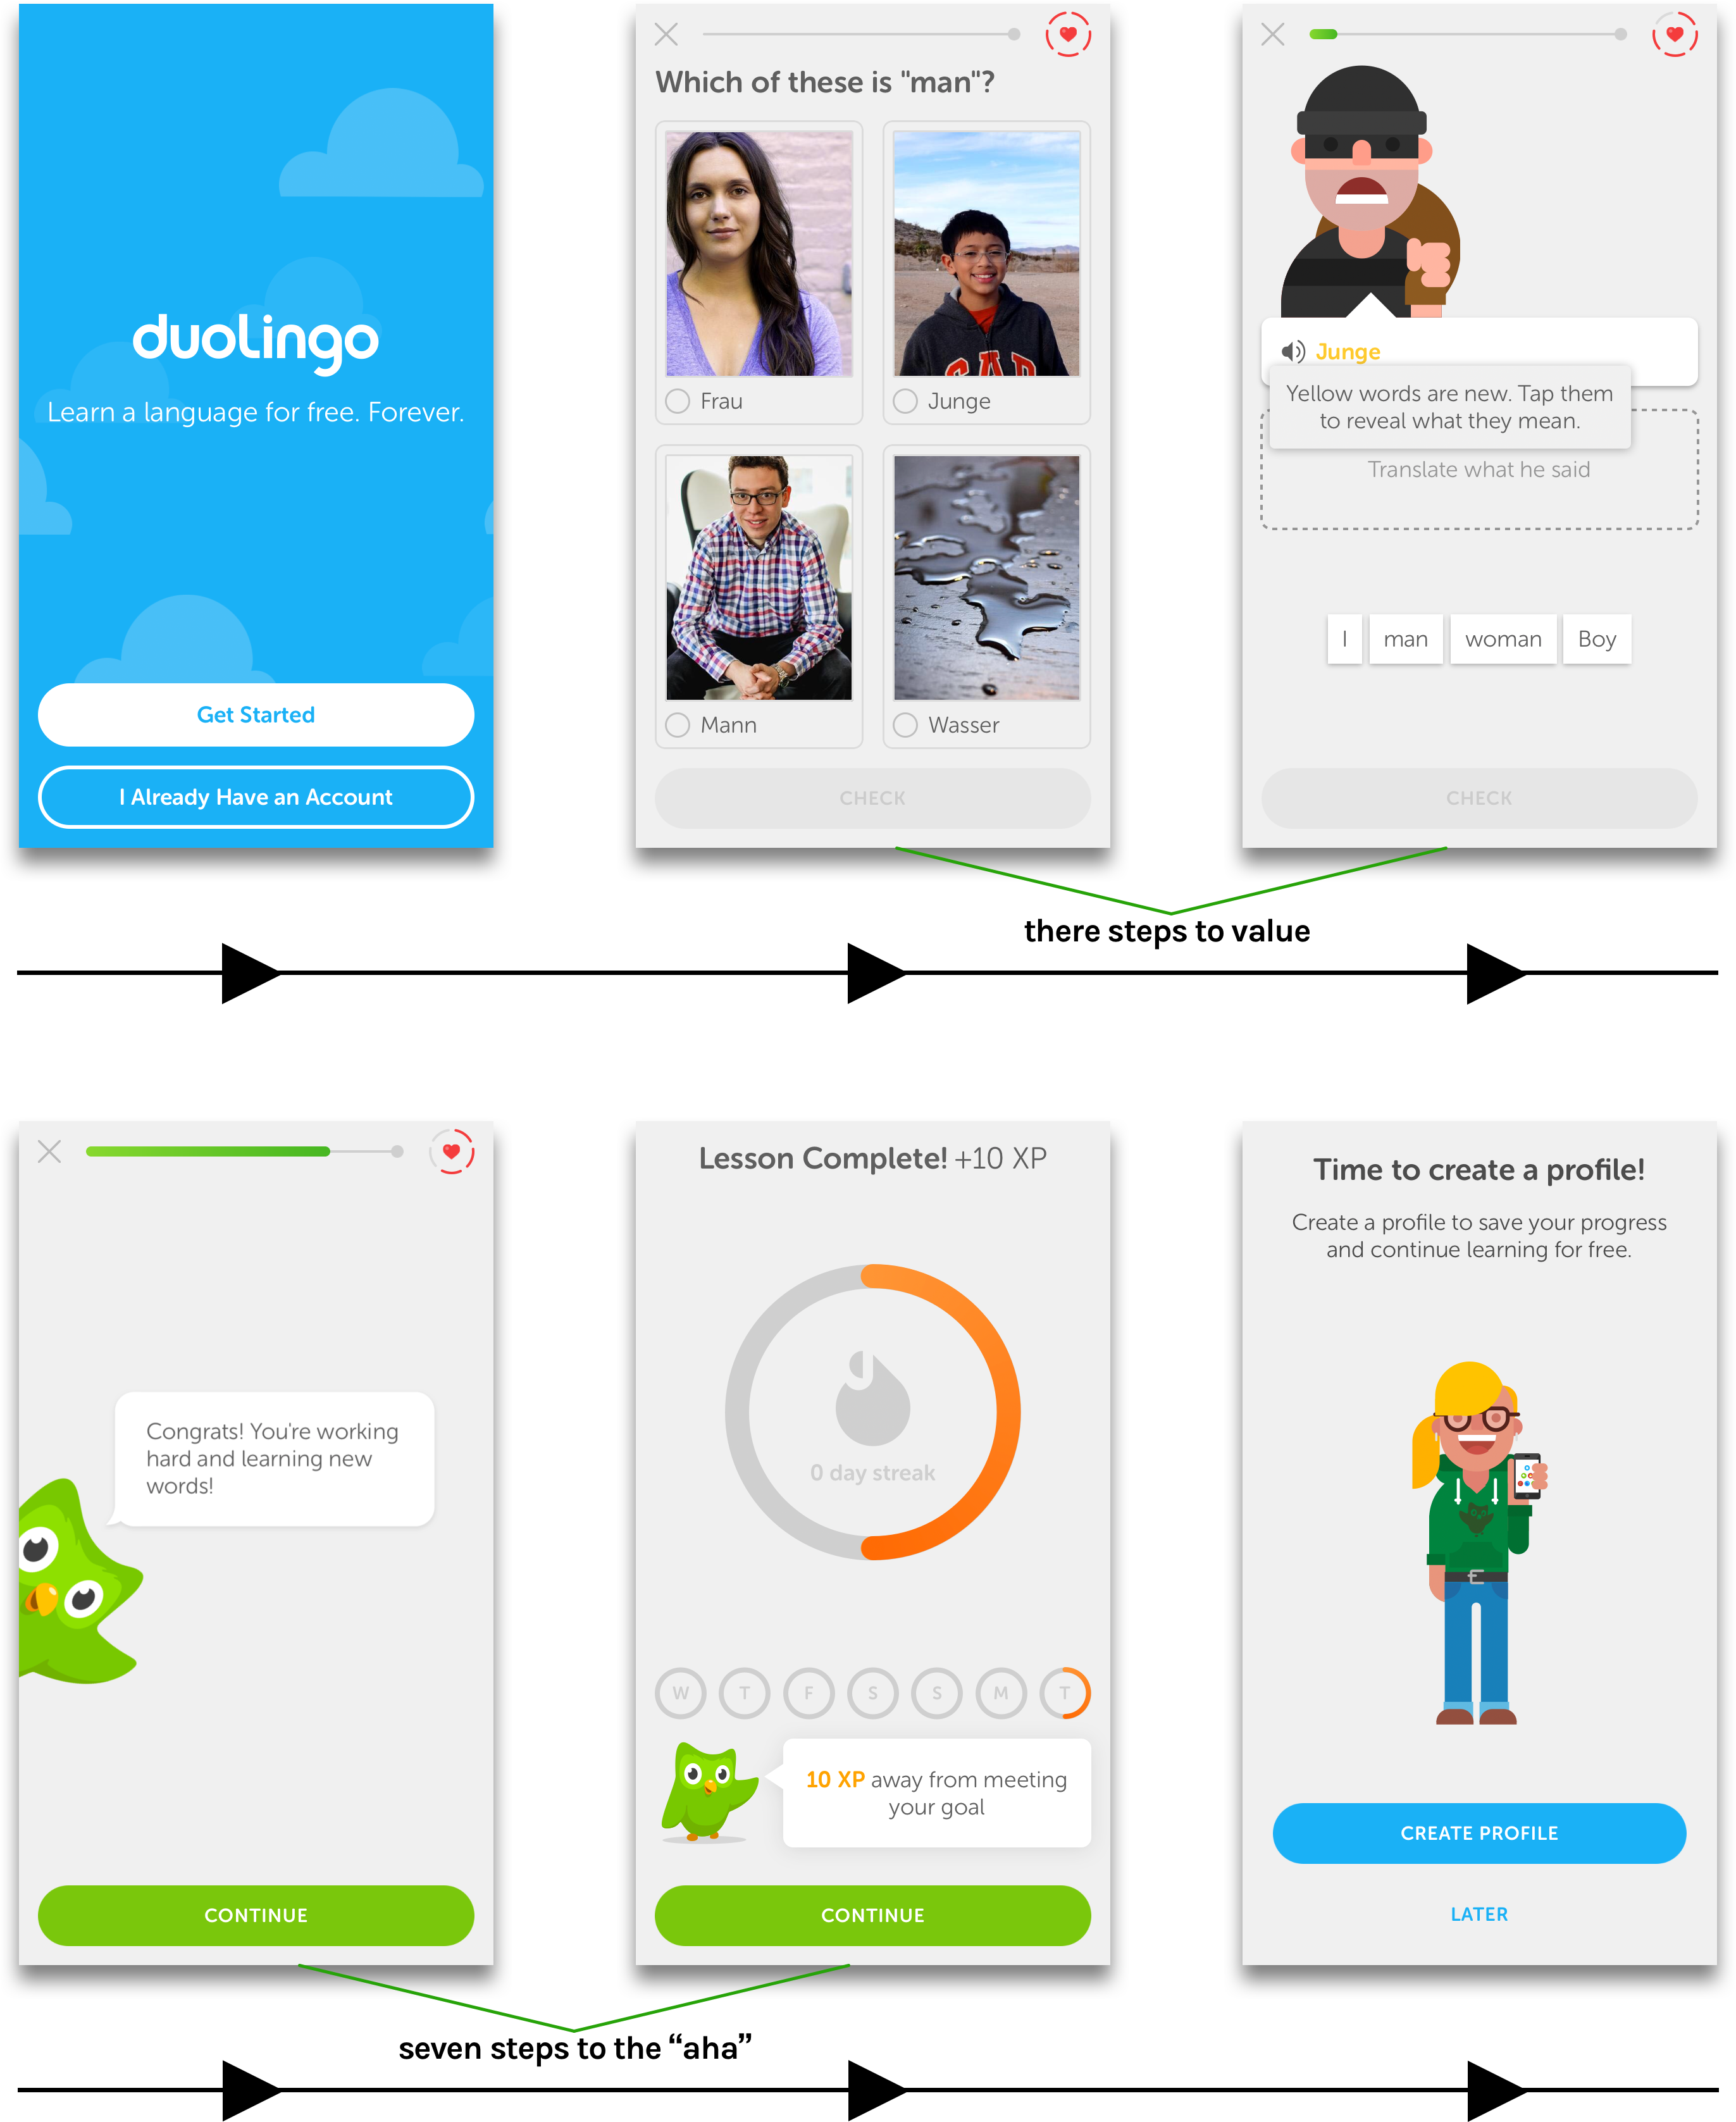 6 screenshots from Duolingo's onboarding flow, showing how quickly they provide value to their users